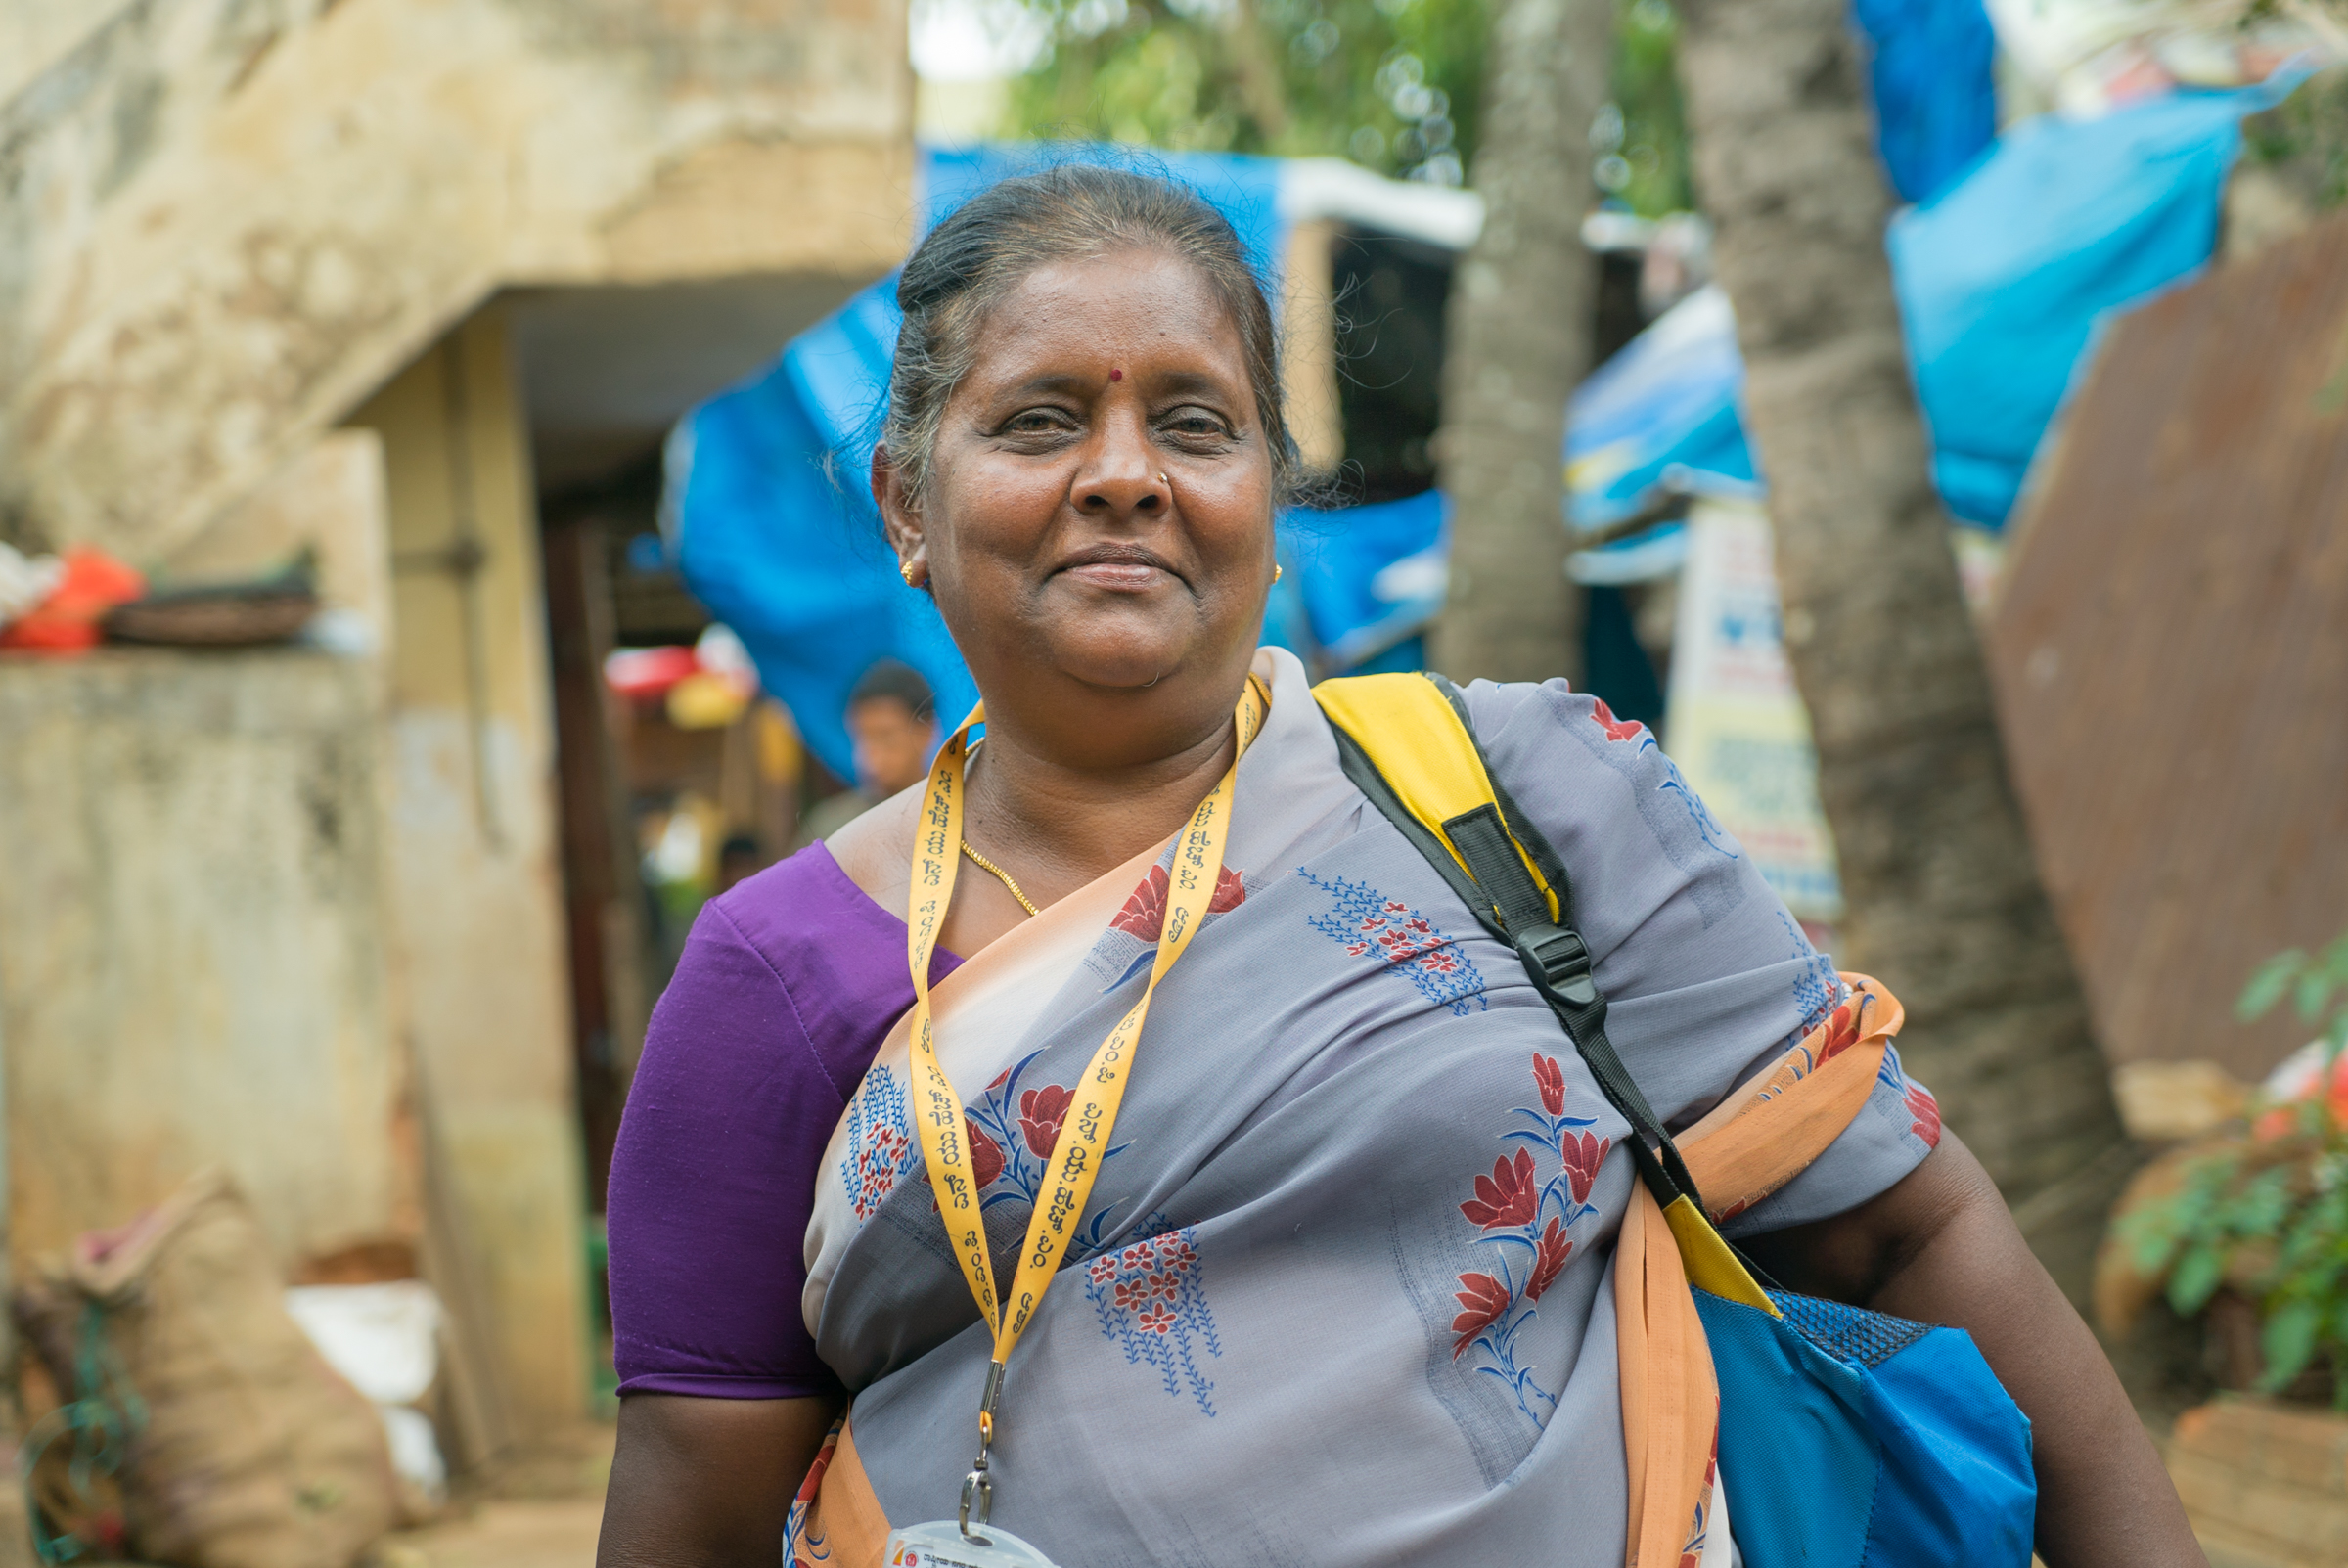 We interviewed an ASHA in Bangalore, the equivalent of a Community Health Worker in Kenya. Here's what we learned